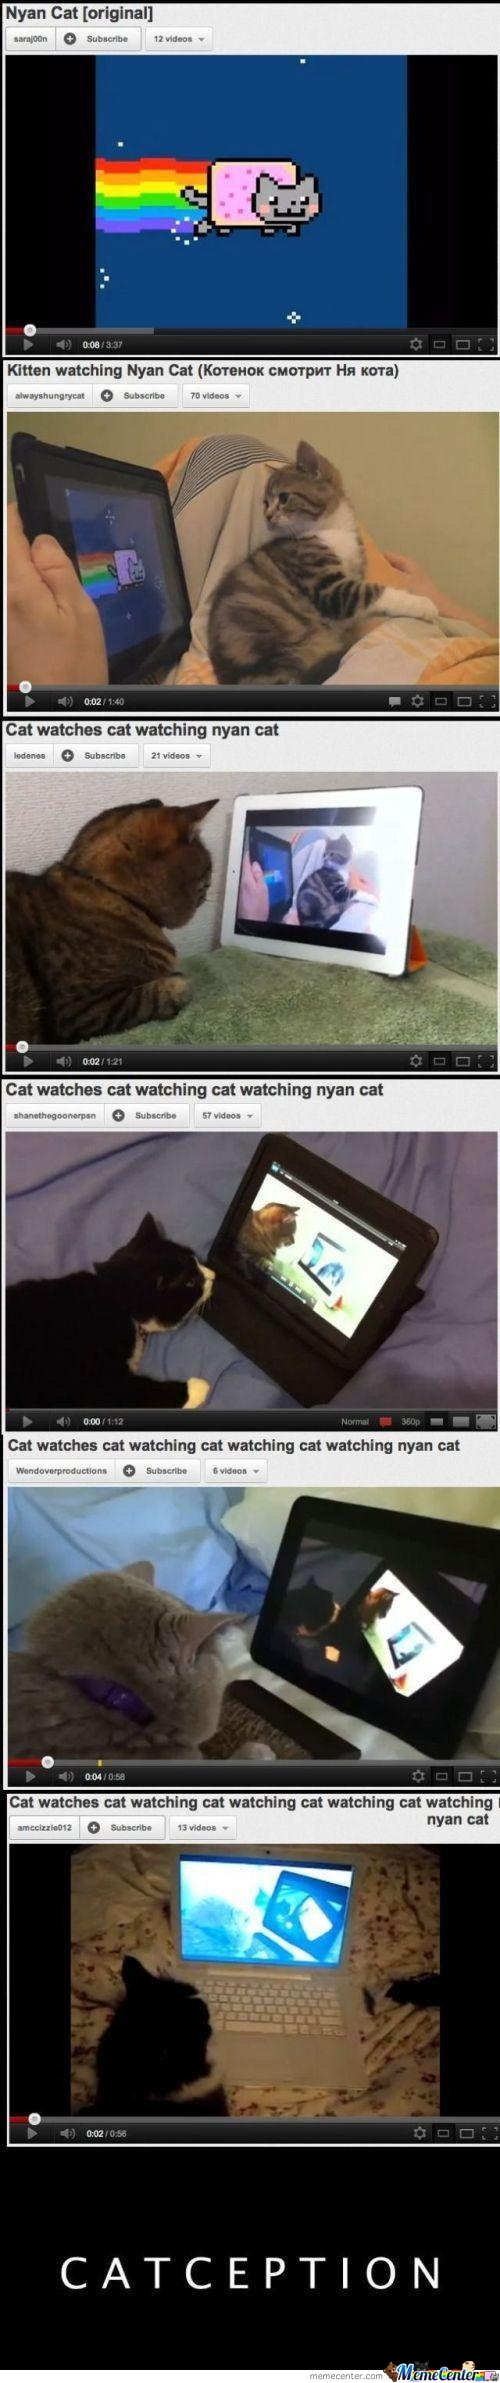 Inception? Catception